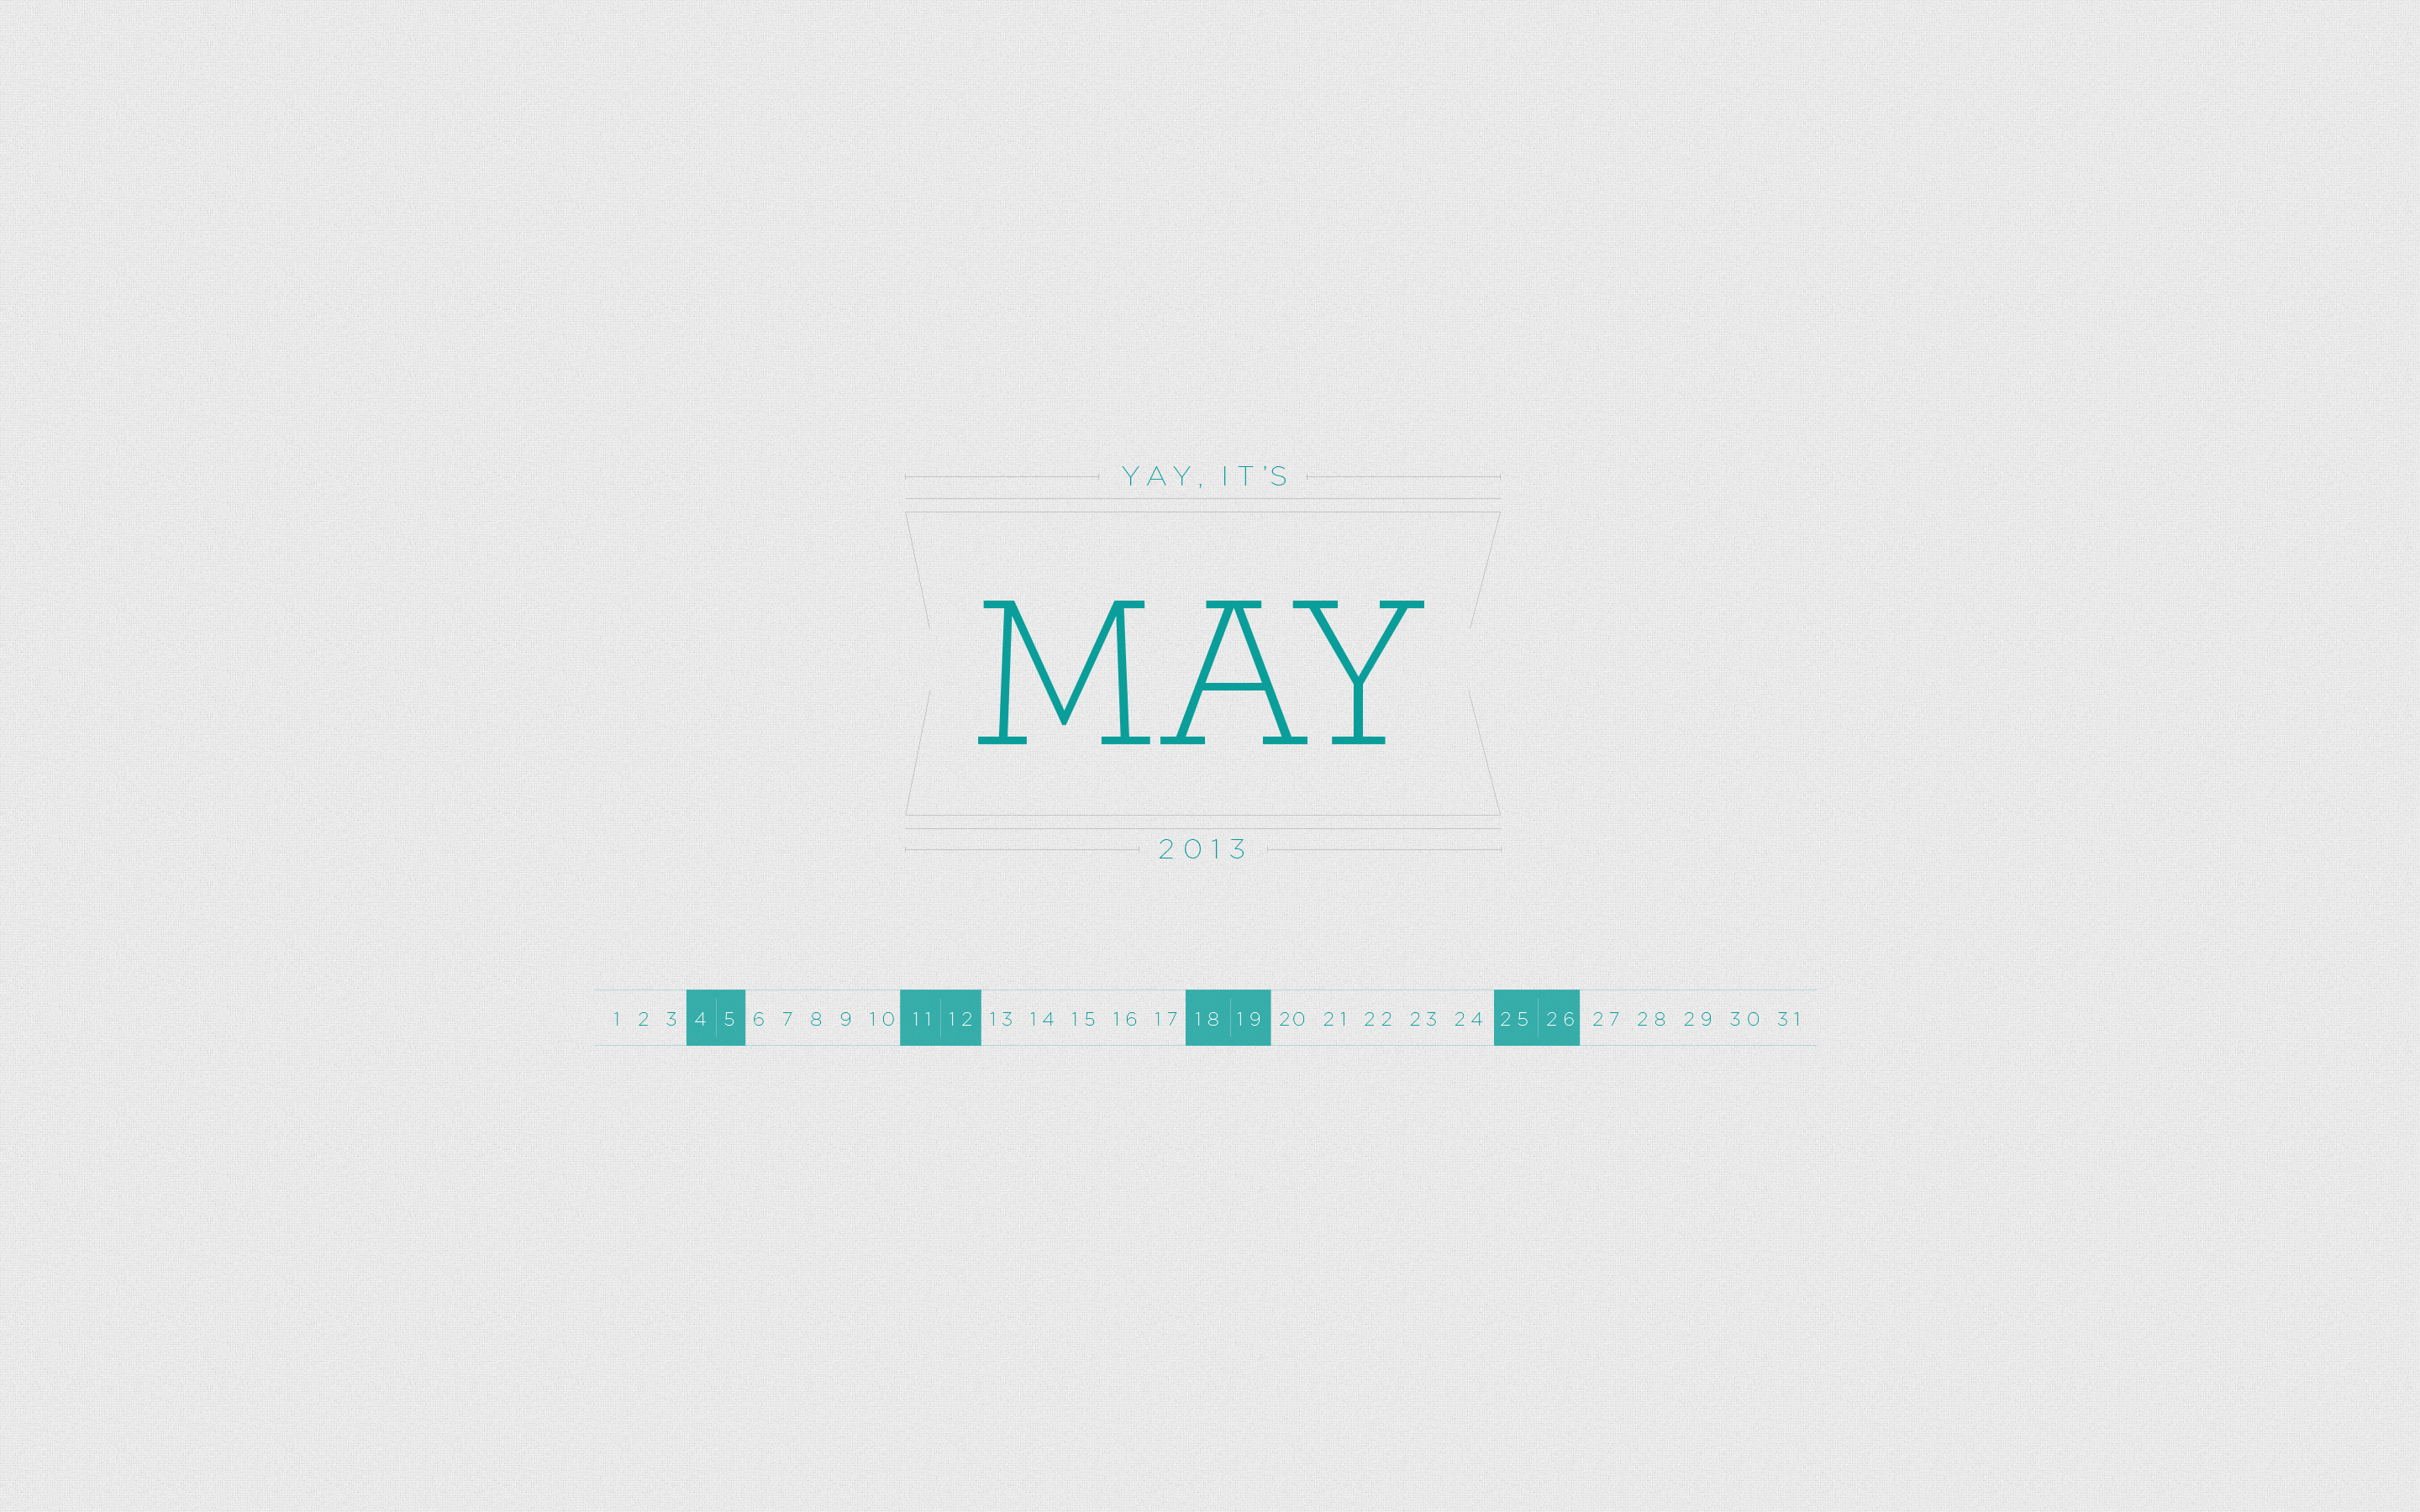 May 2013 Desktop Calendar Wallpaper Paper Leaf 2880x1800